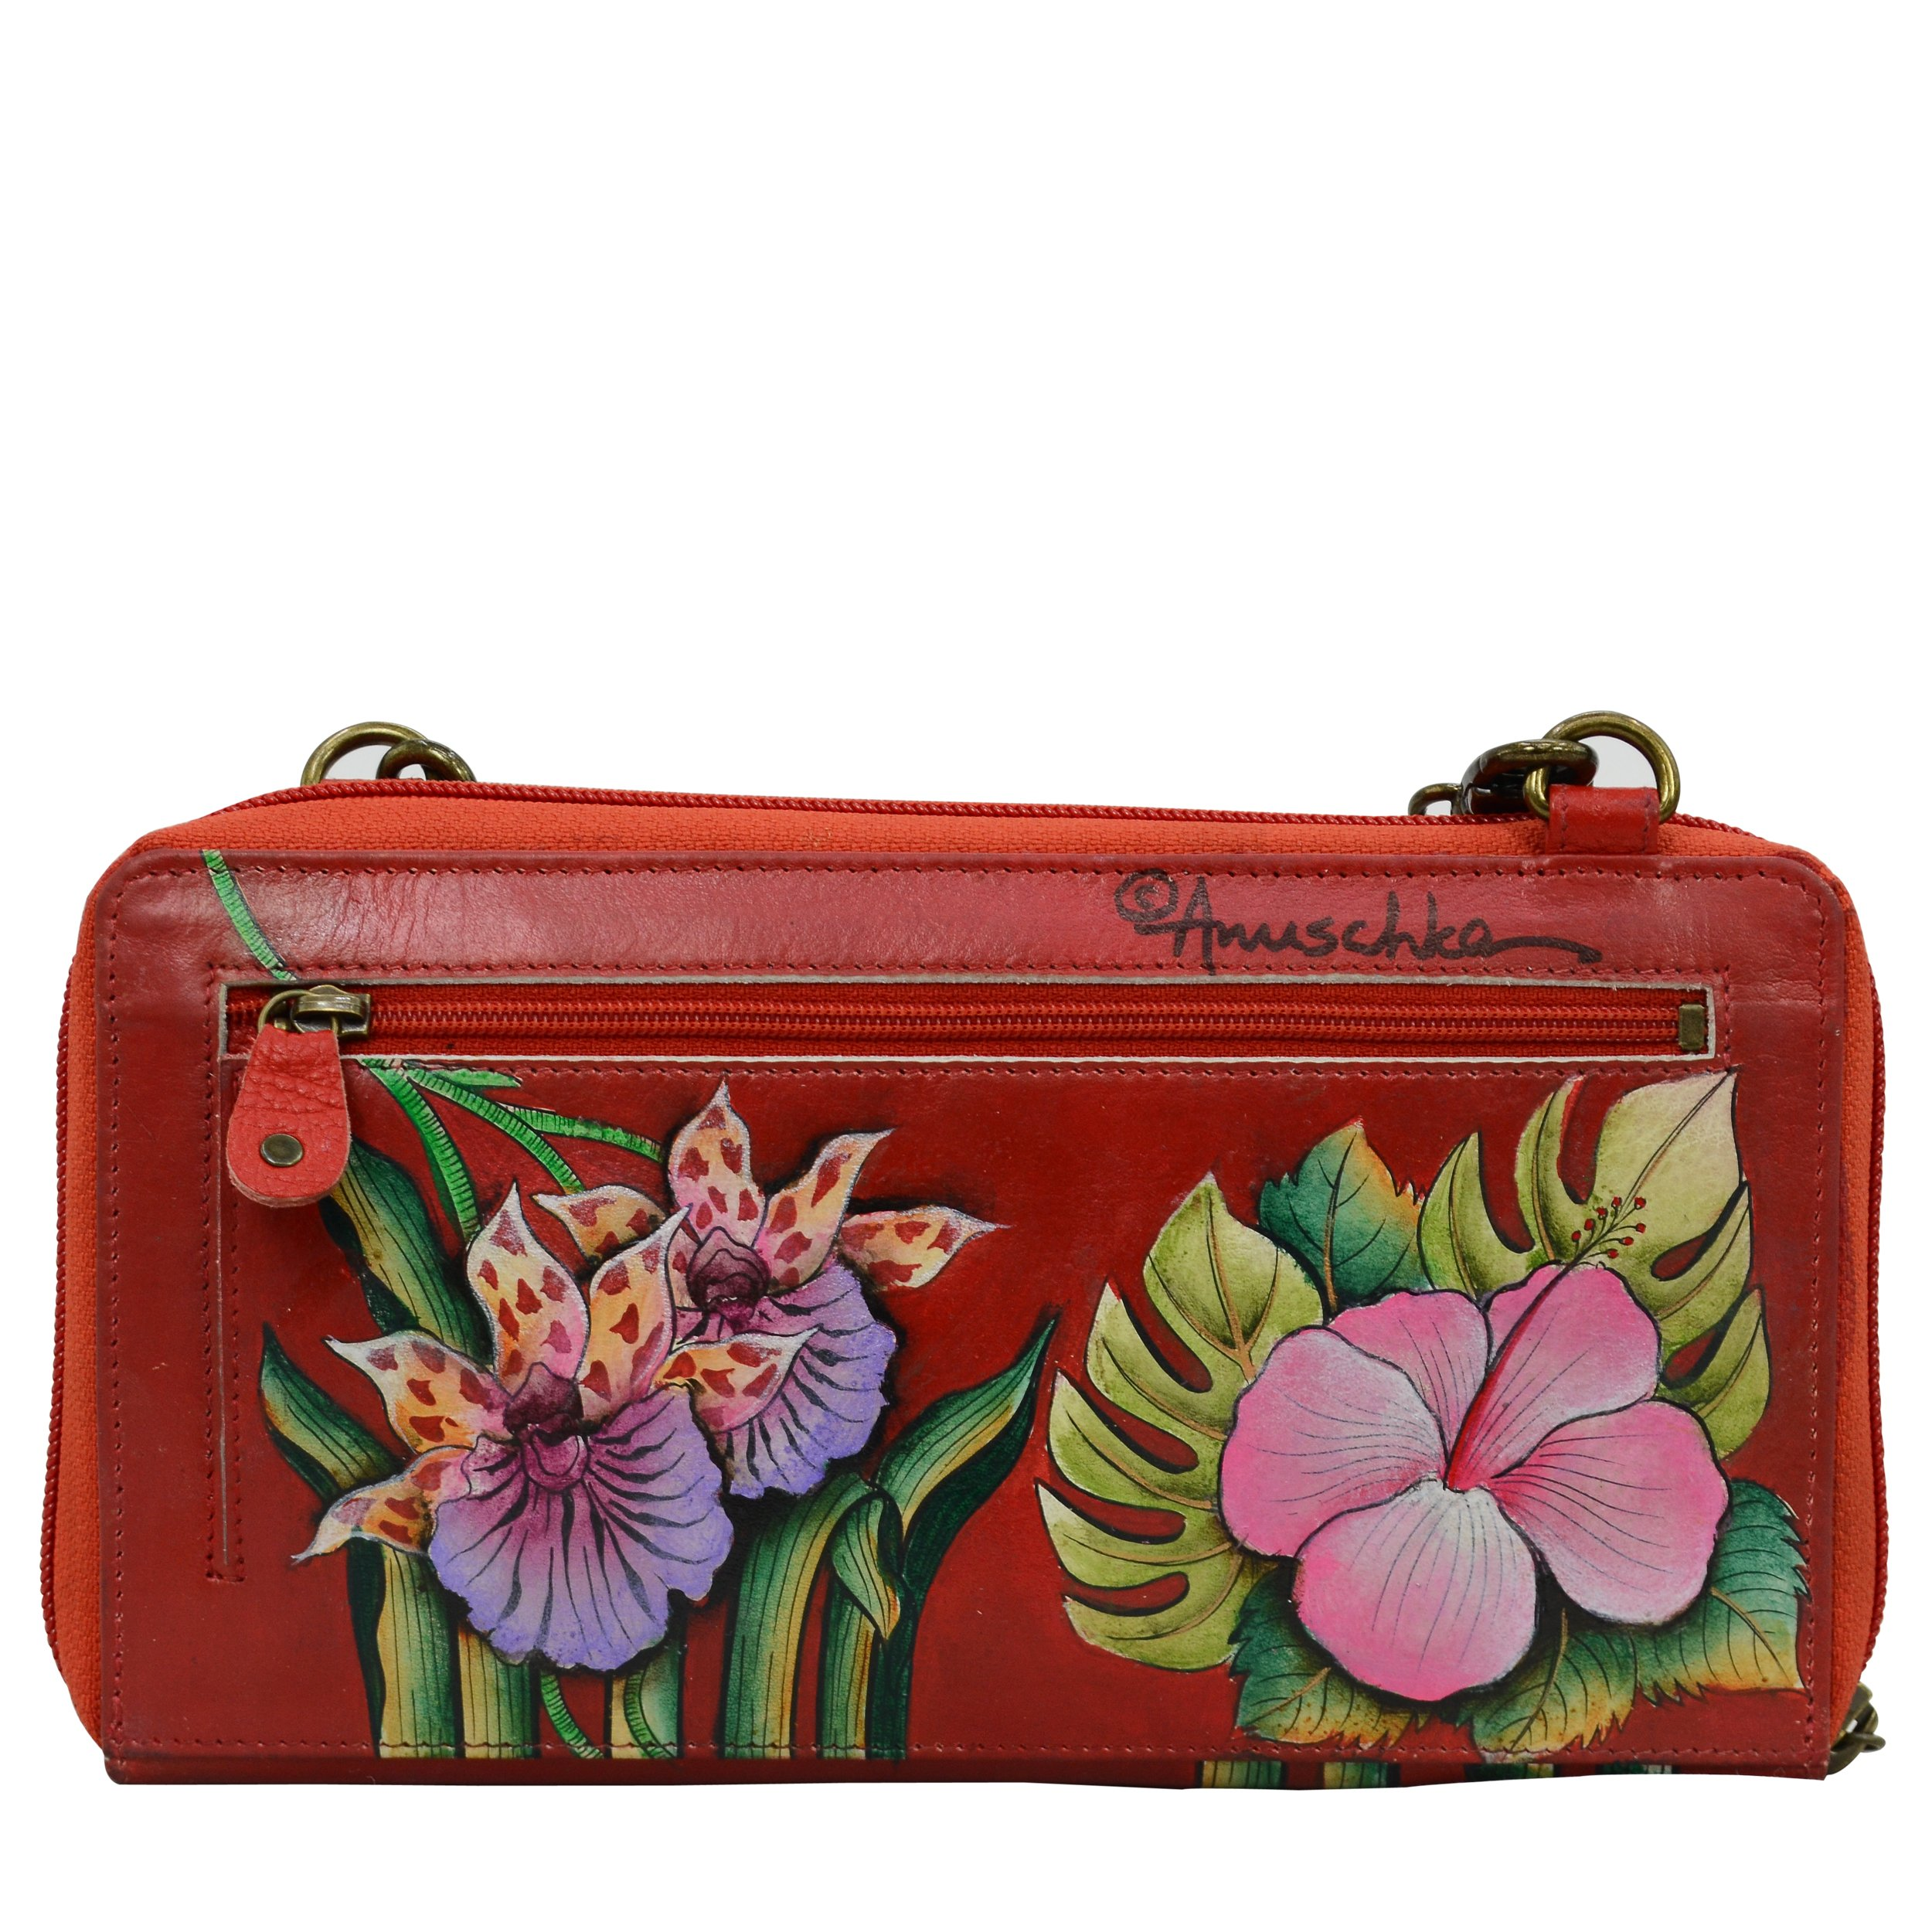 Anuschka Hand Painted Leather Women'S Zip Around Rfid Crossbody Clutch, Island Escape by Anna by Anuschka (Image #2)